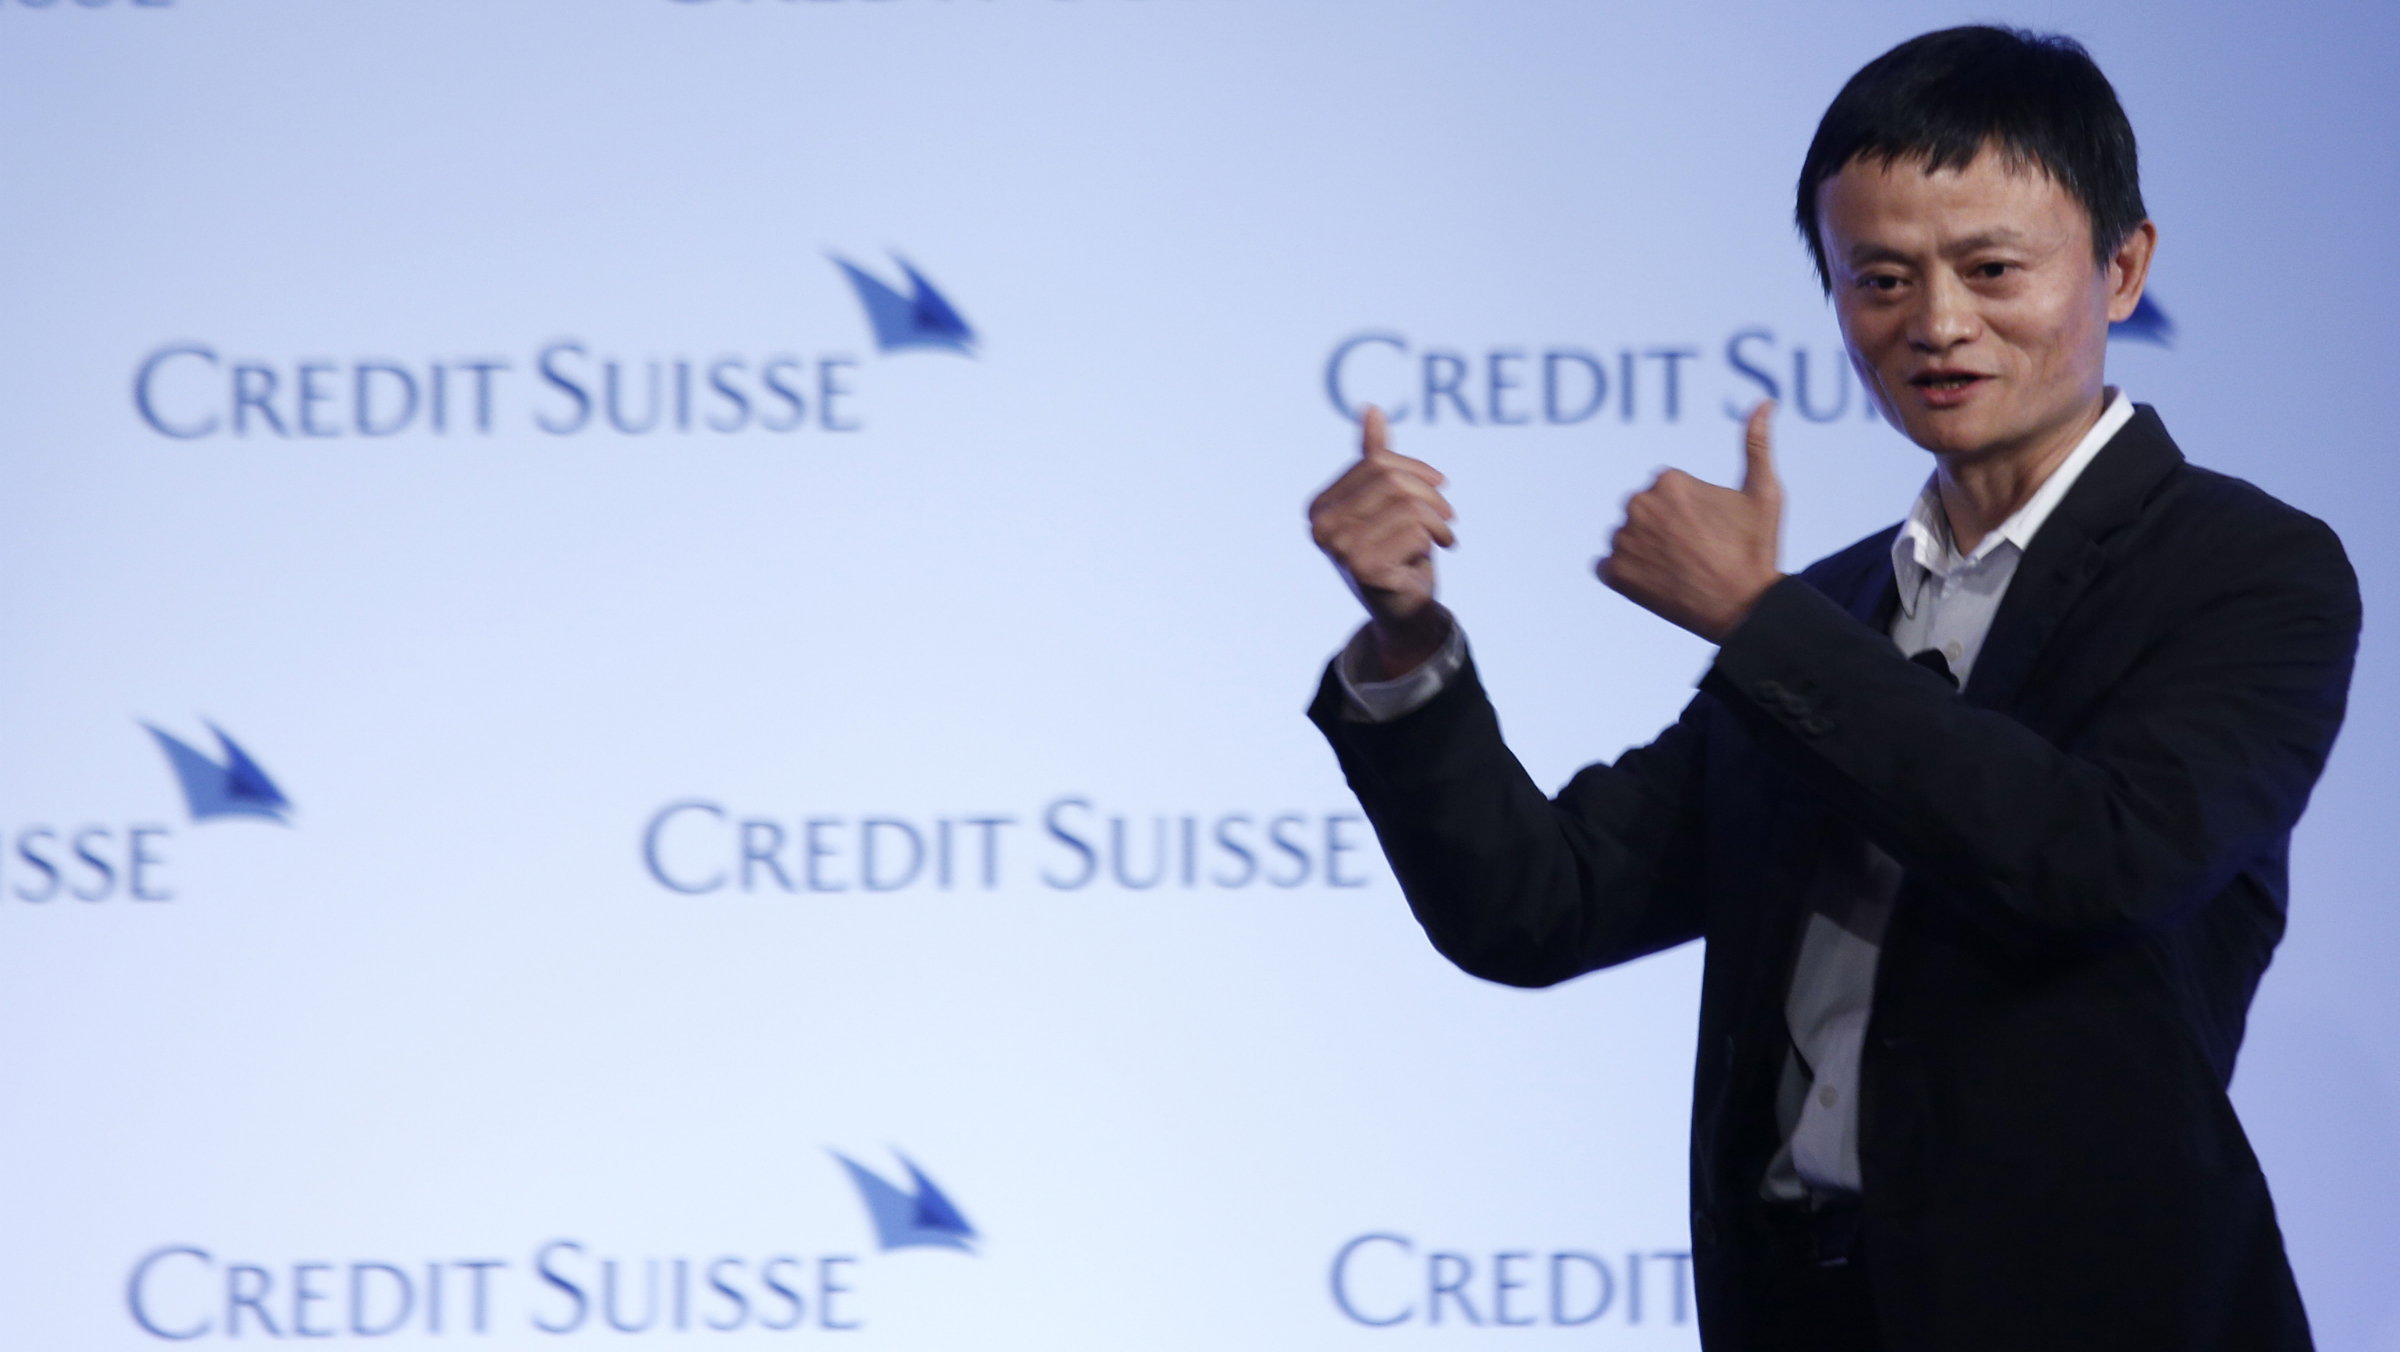 Jack Ma, chairman of China's largest e-commerce firm Alibaba Group, gestures during a conference in Hong Kong Wednesday, March 20, 2012. Ma expects 30 percent of China's total retail sales to be conducted online in five years' time. (AP Photo/Vincent Yu